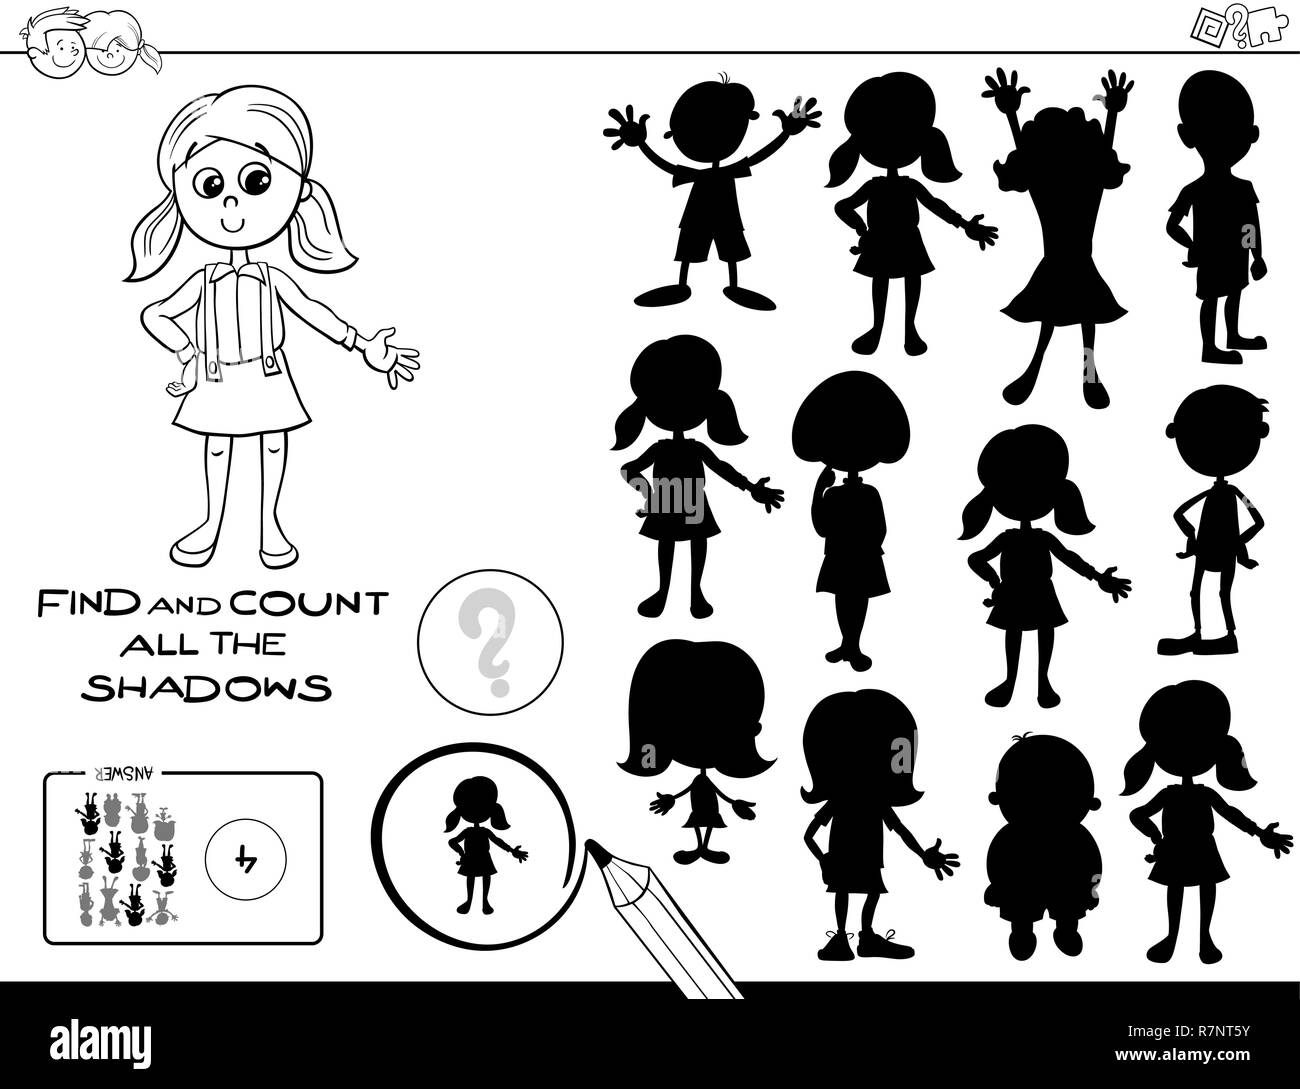 Black And White Cartoon Illustration Of Finding And